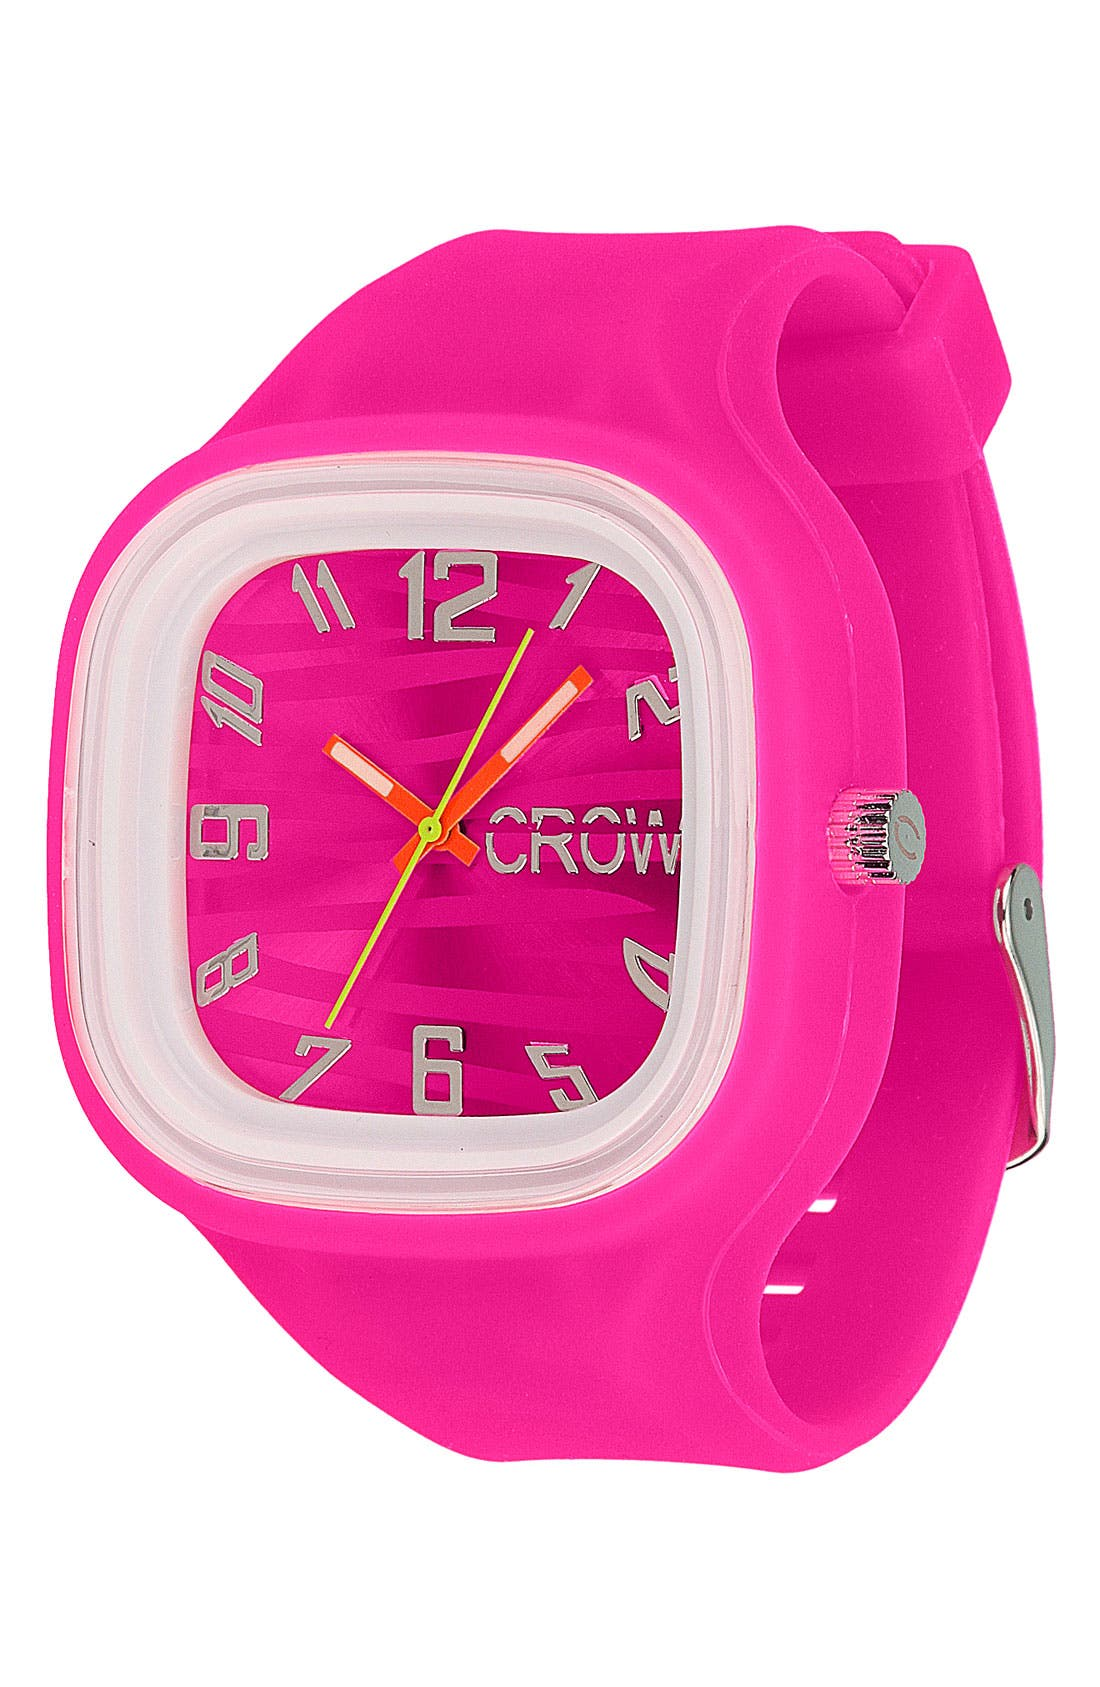 Main Image - Crow 'Zebra' Gel Watch